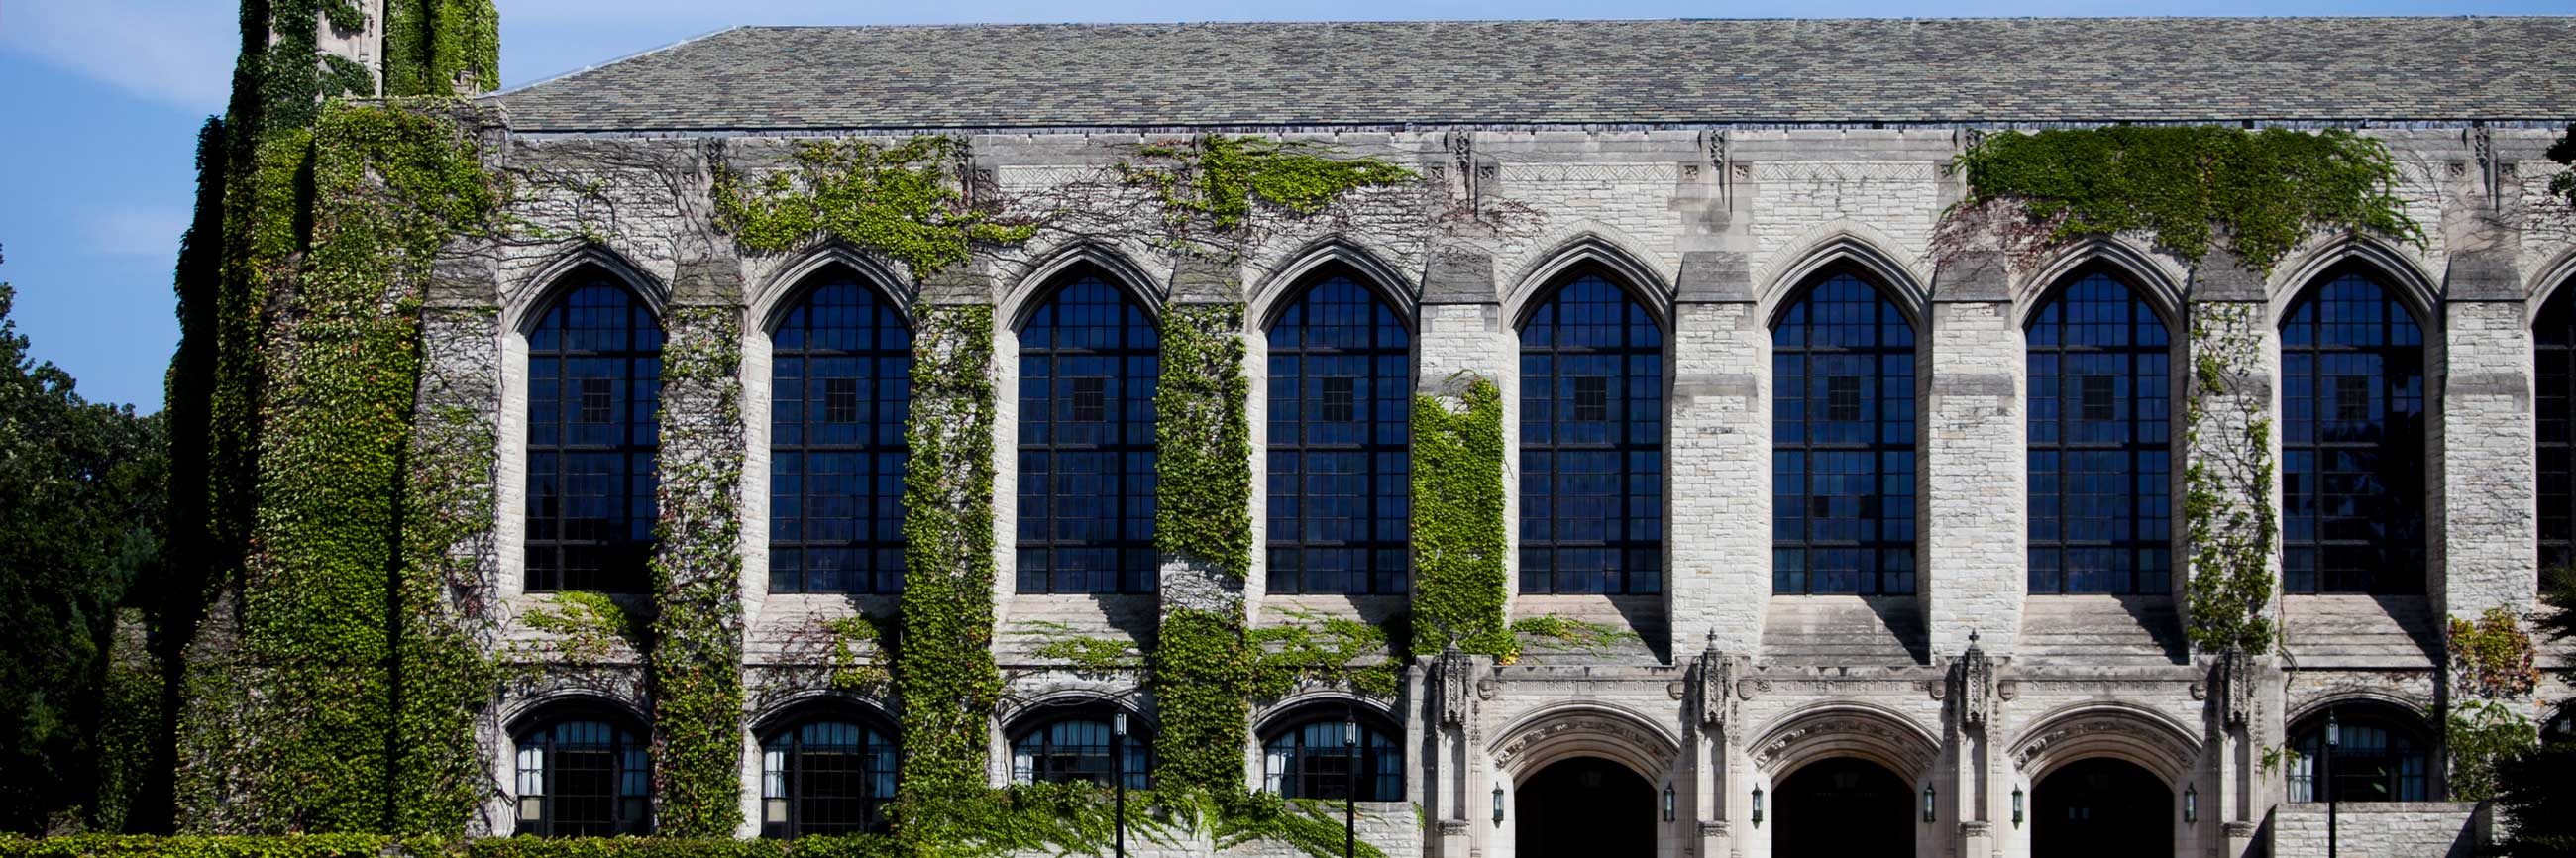 Evanston campus Deering Library covered in ivy.